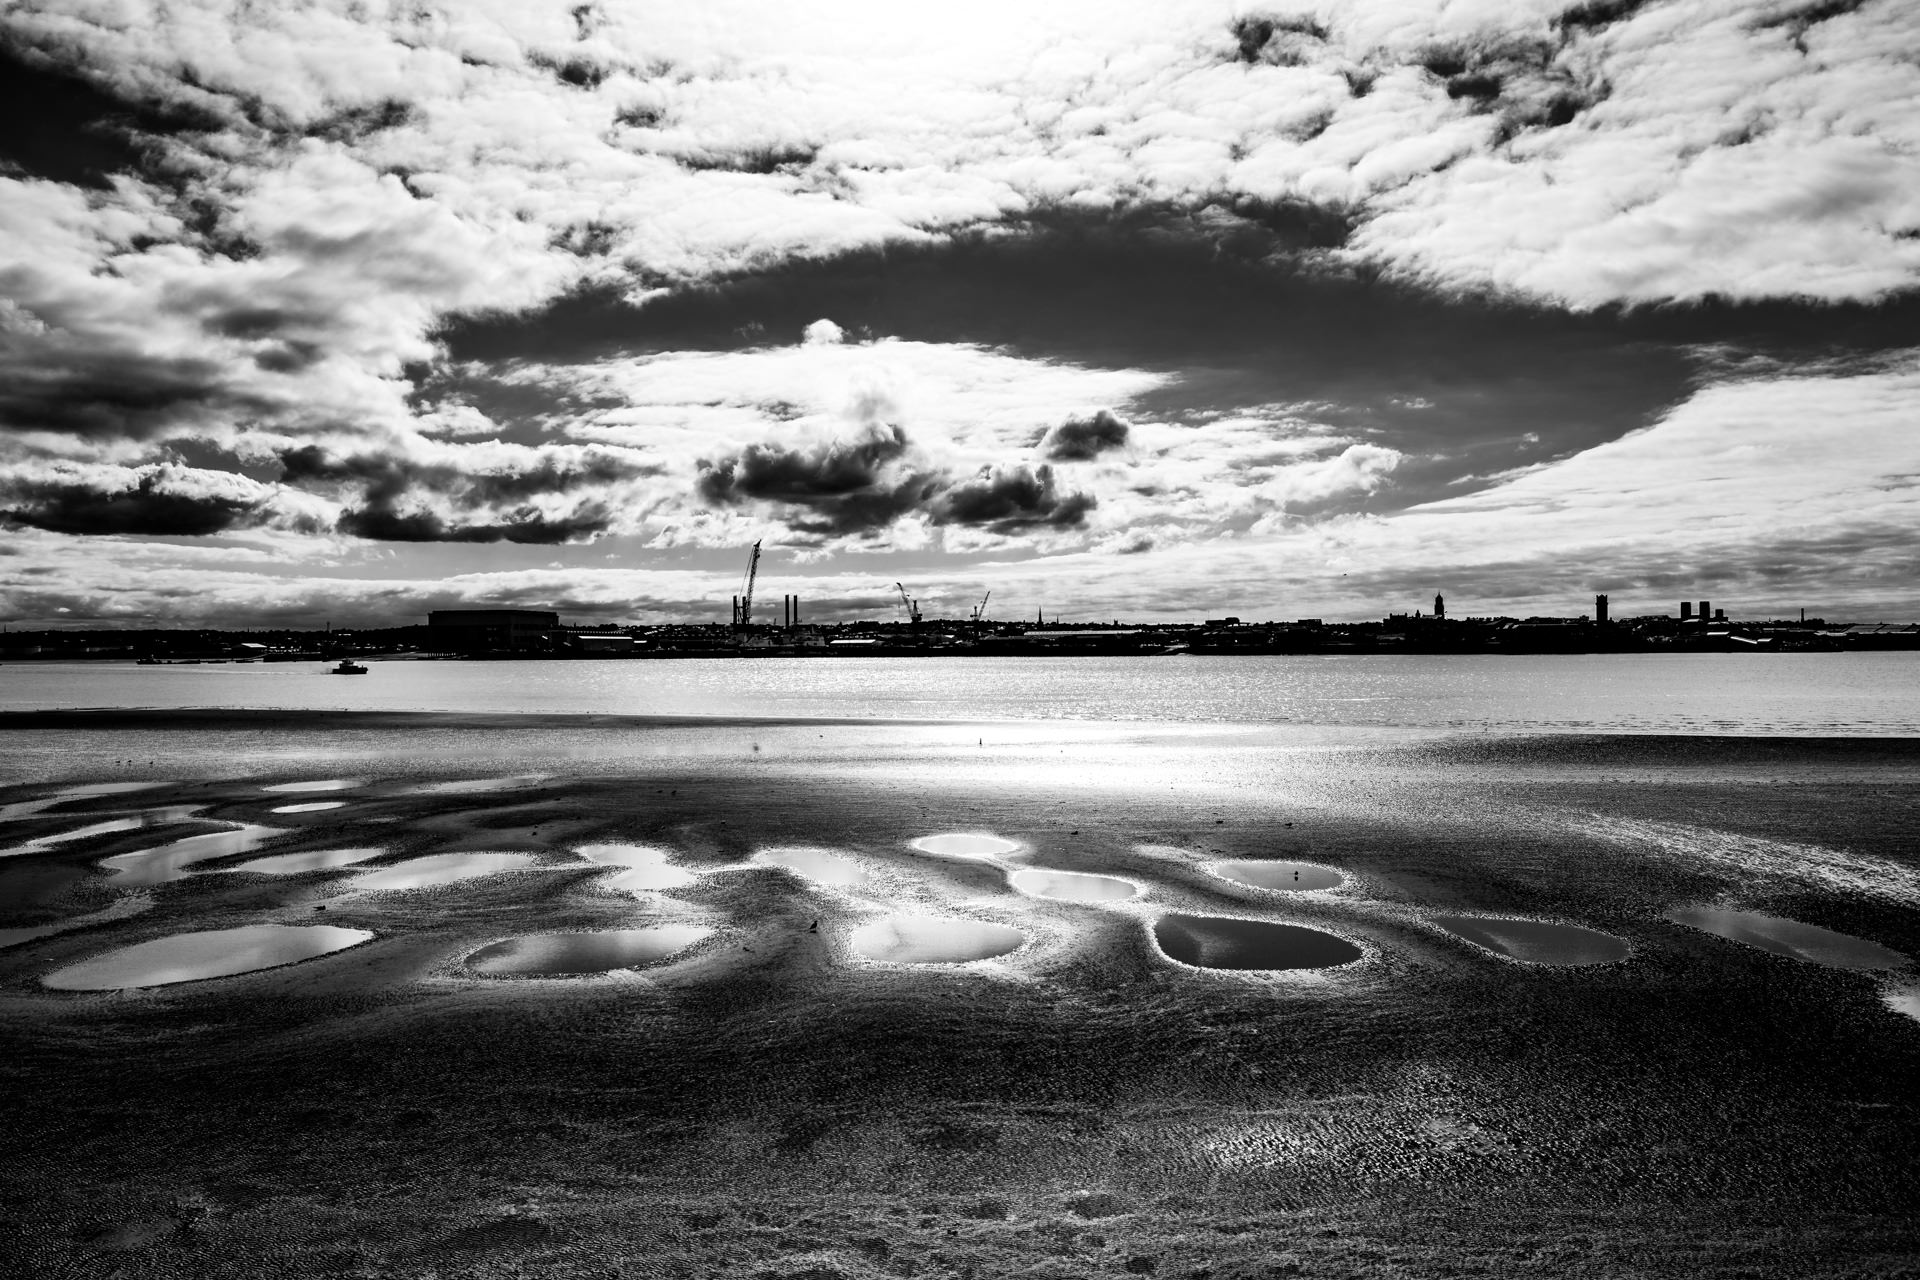 ...with a walk back along the Mersey.